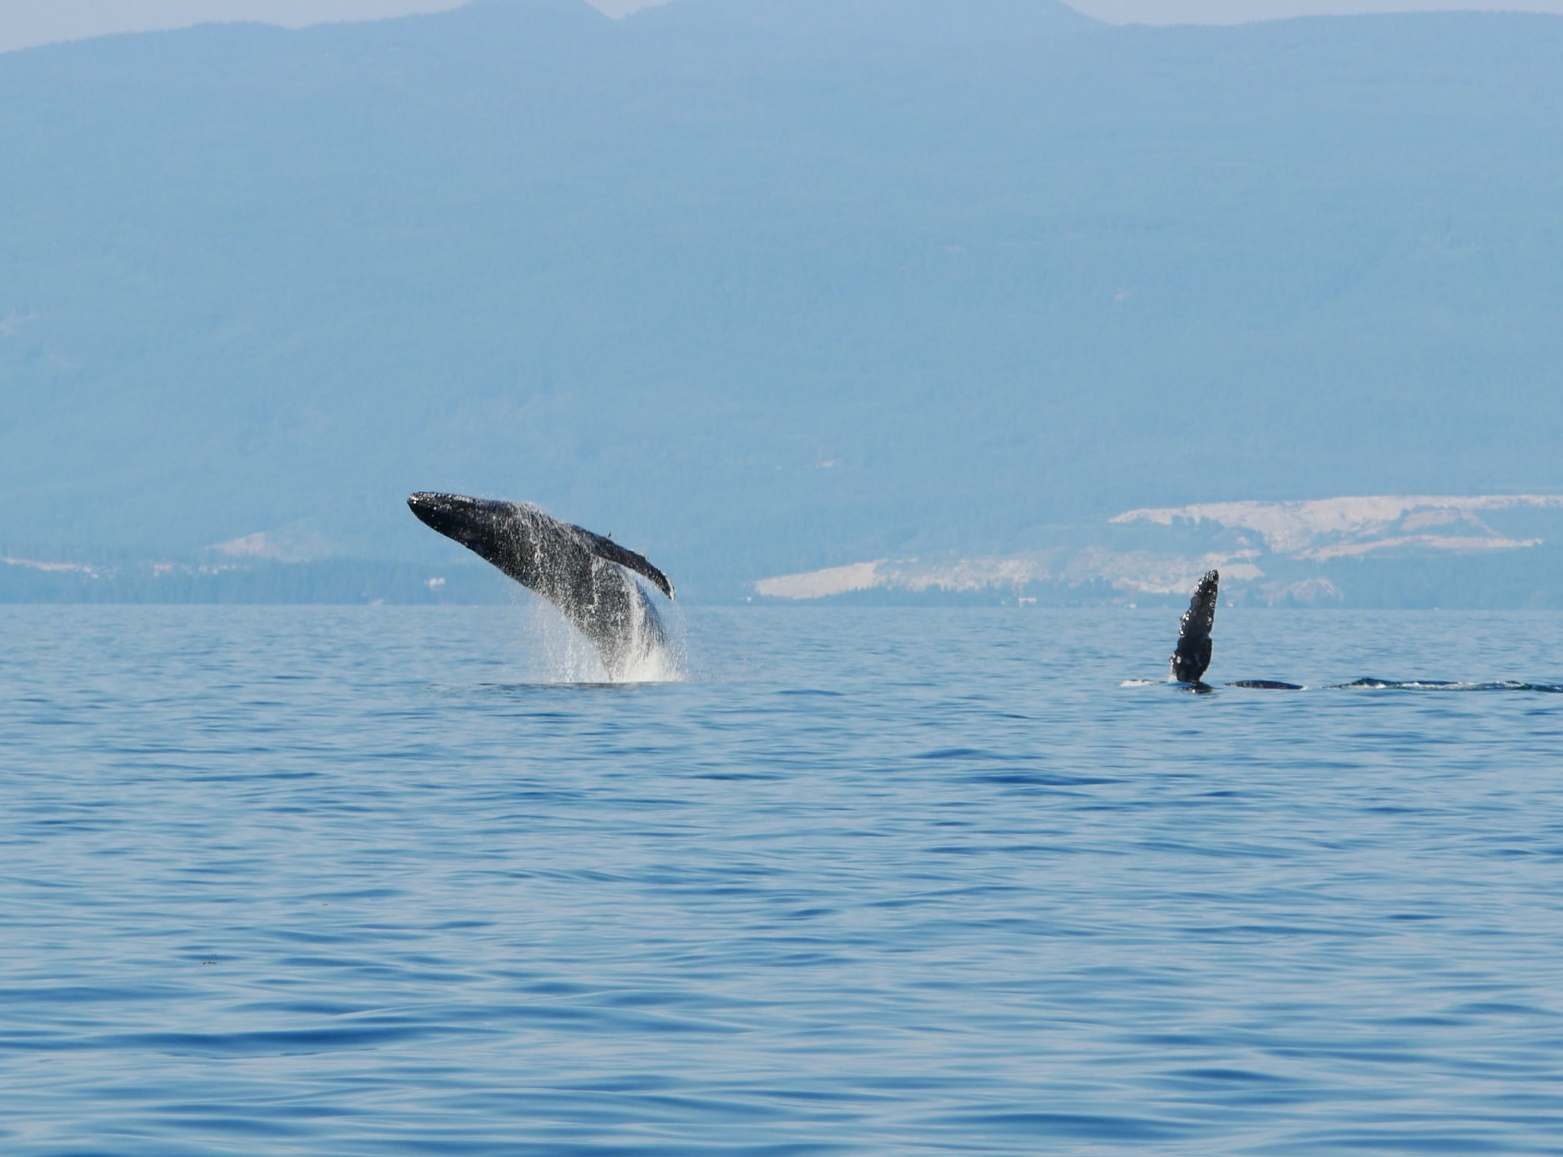 Breach (left) and pectoral wave (right) of these very active humpbacks. Photo by Rodrigo Menezes.